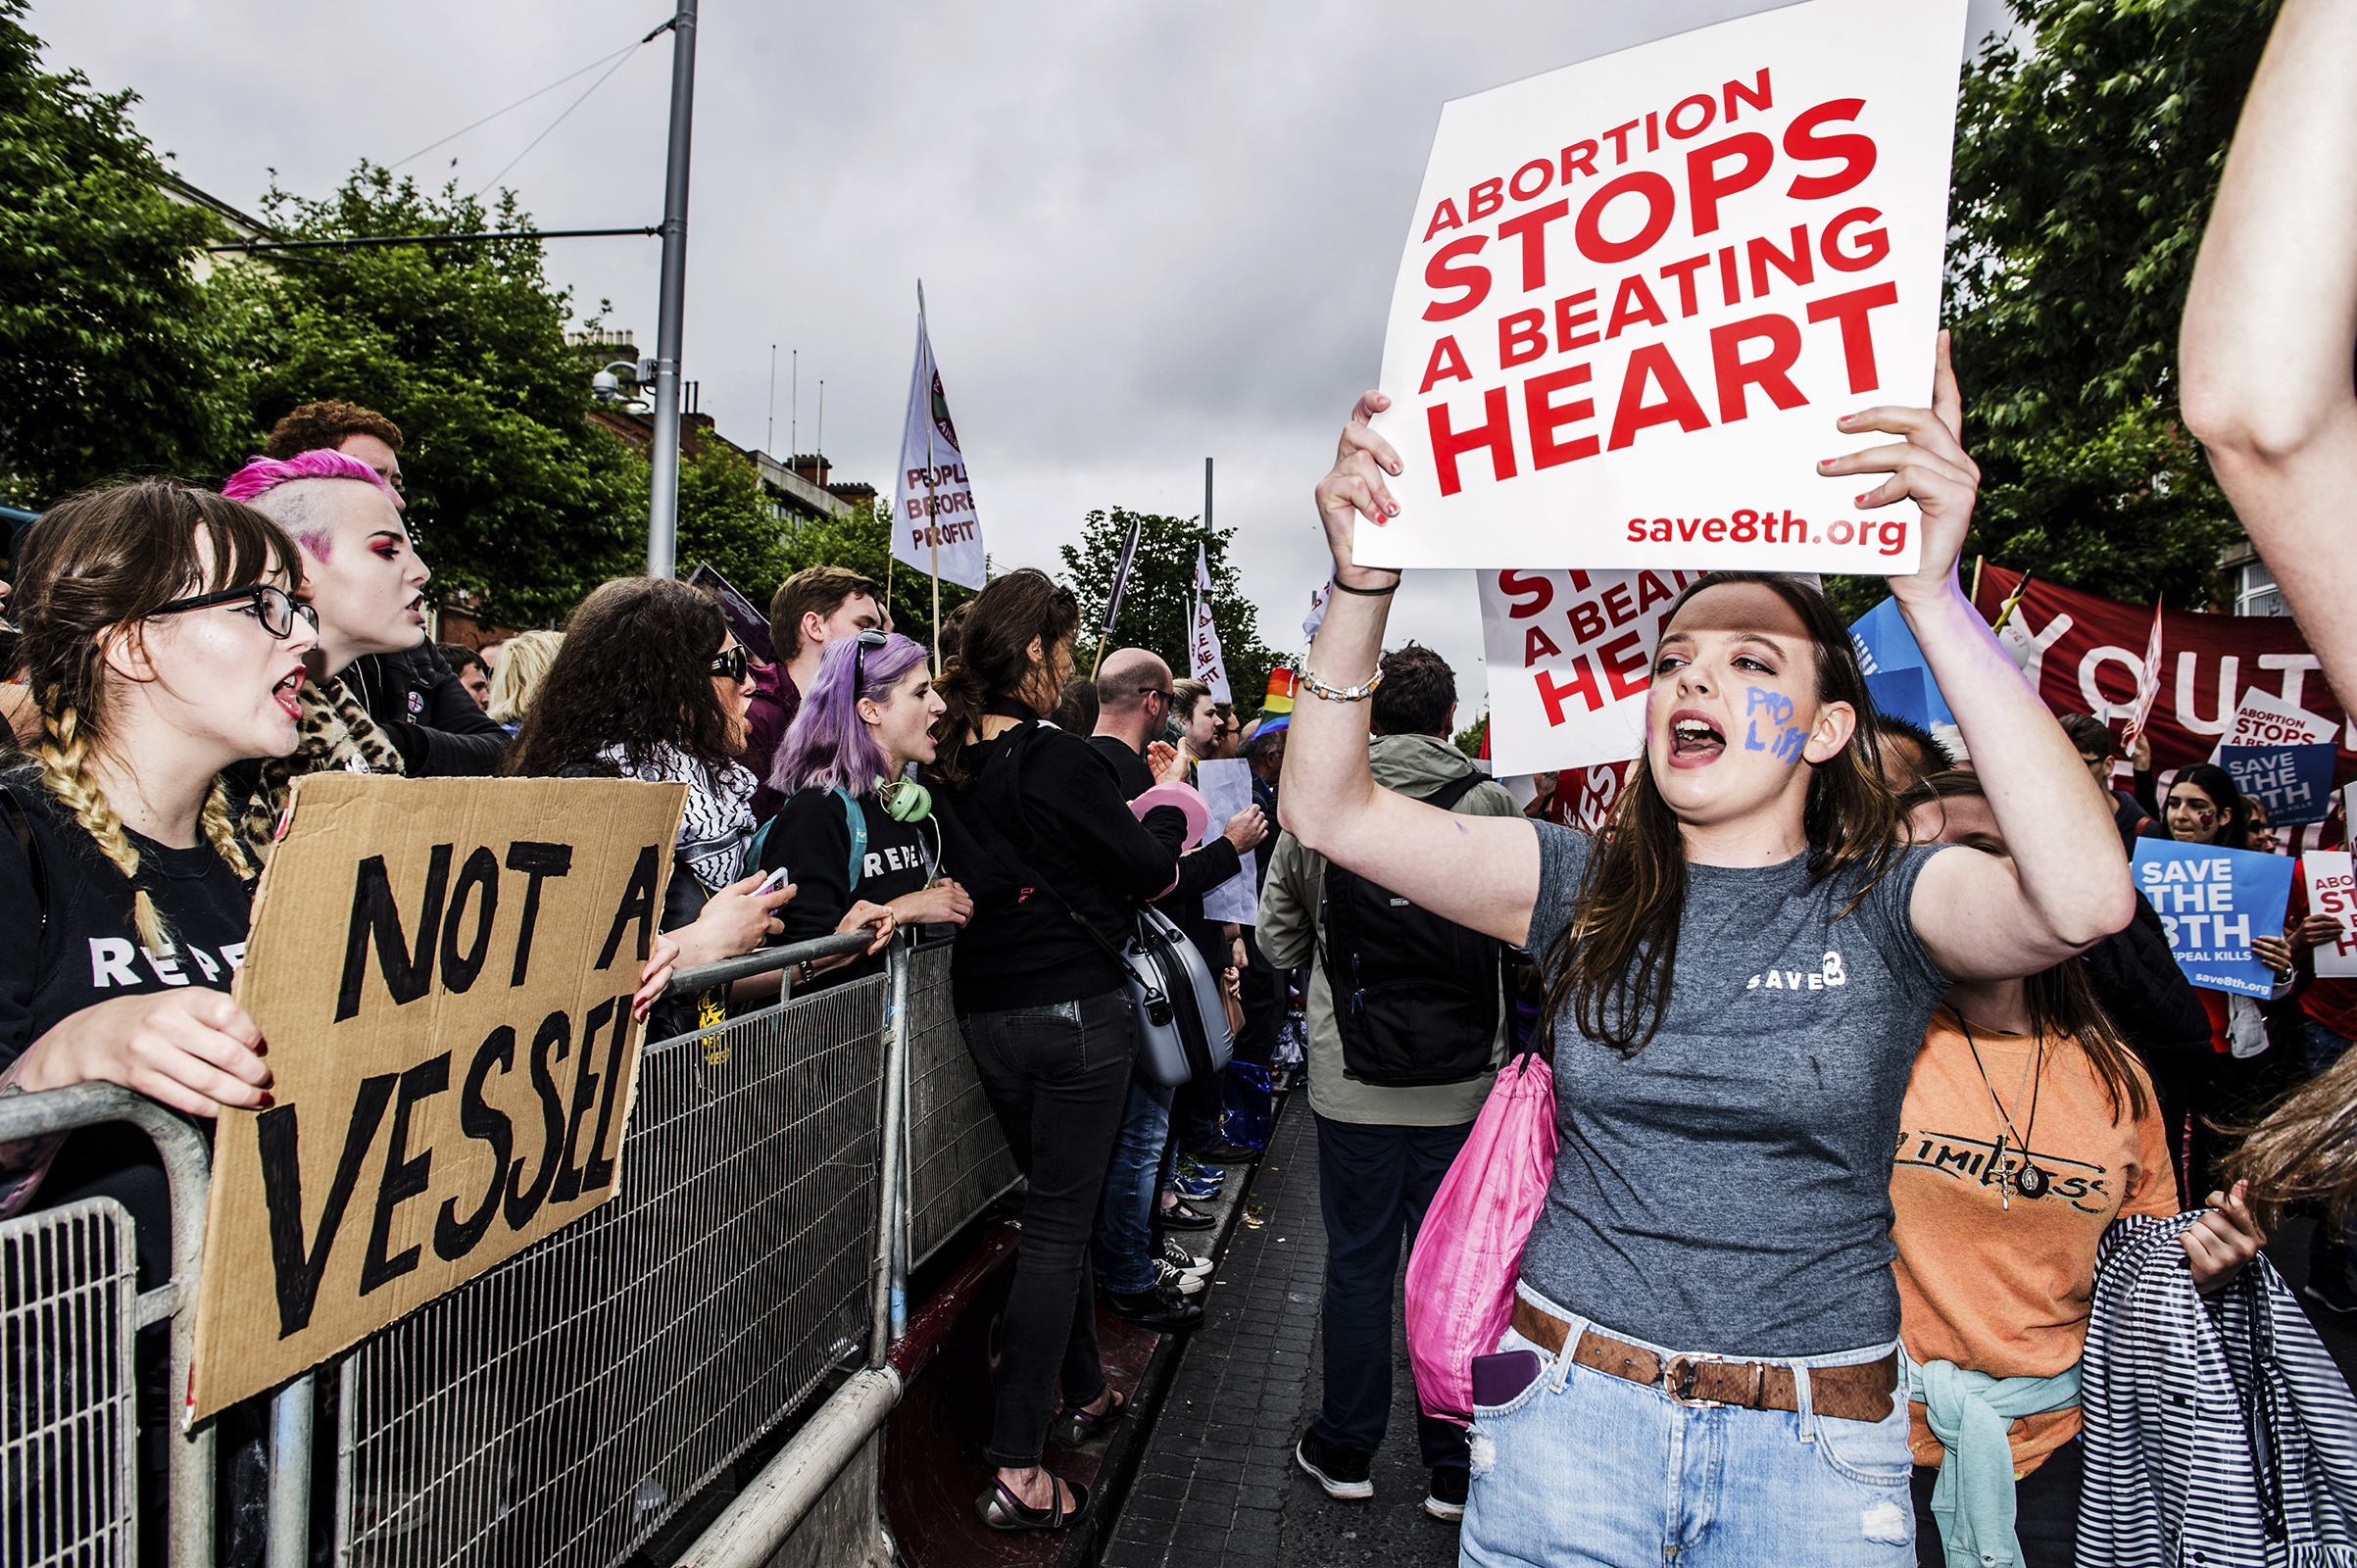 Anti-abortion and pro–abortion rights activists have held rallies in Ireland ahead of the May 25 vote